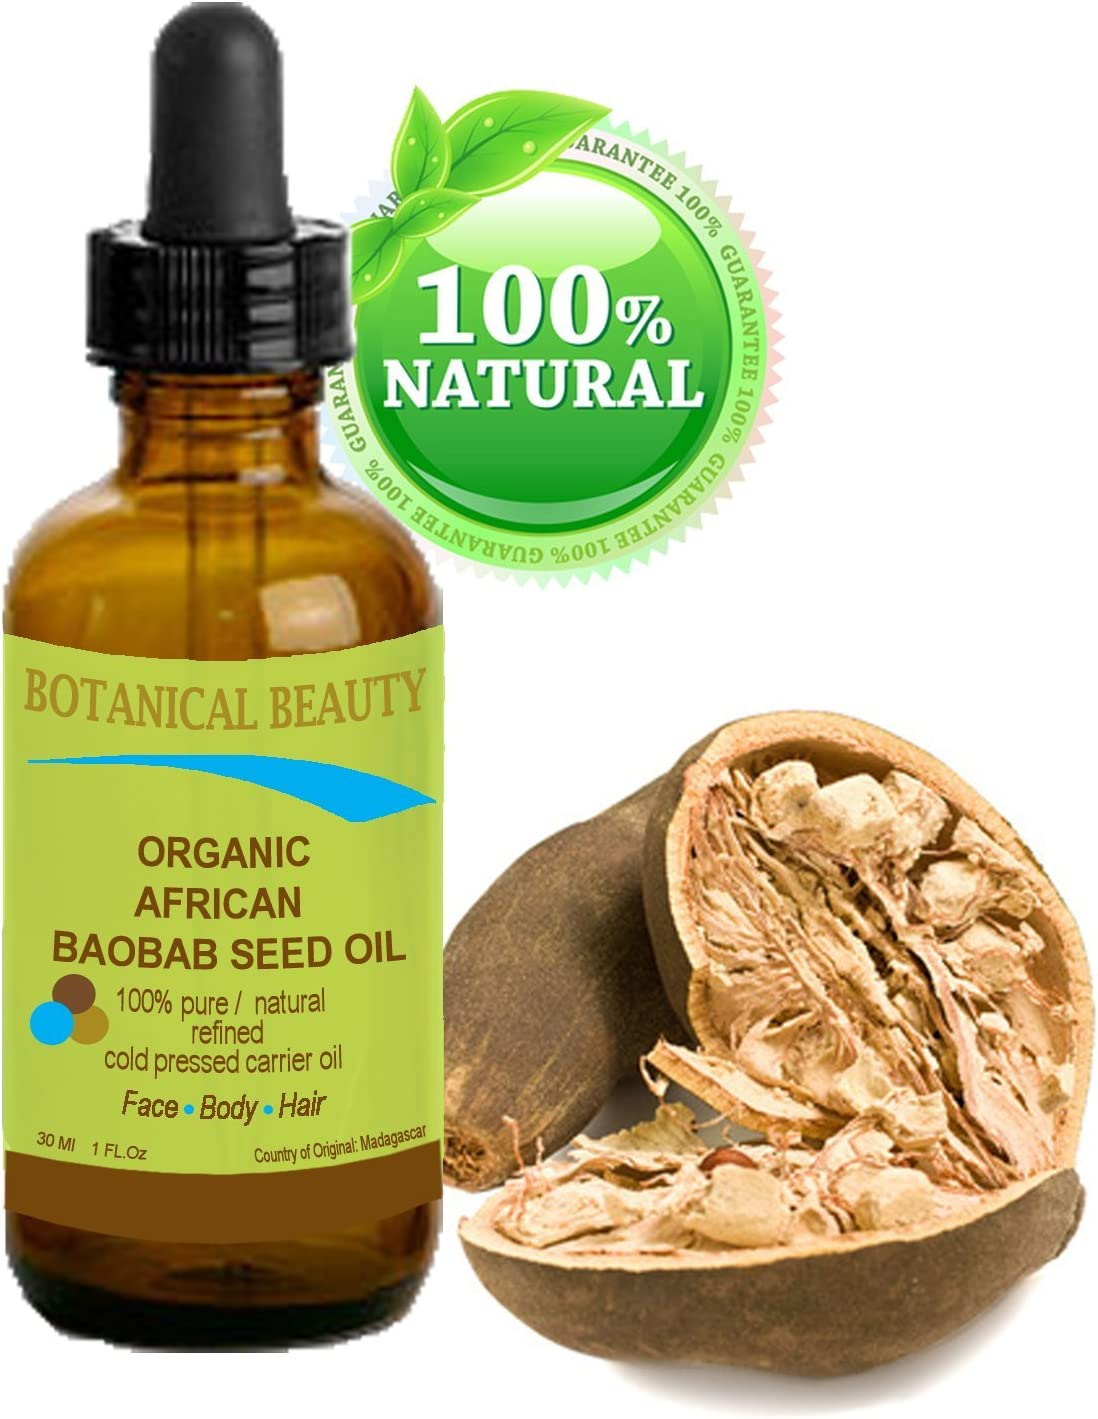 African Baobab Seed Oil 100 Pure Natural Undiluted Refined Cold Pressed Carrier Oil For Skin Hair Lip And Nail Care Rich In Vitamins A D E And F And E 0 5 Fl Oz 15ml Botanical Beauty Beauty